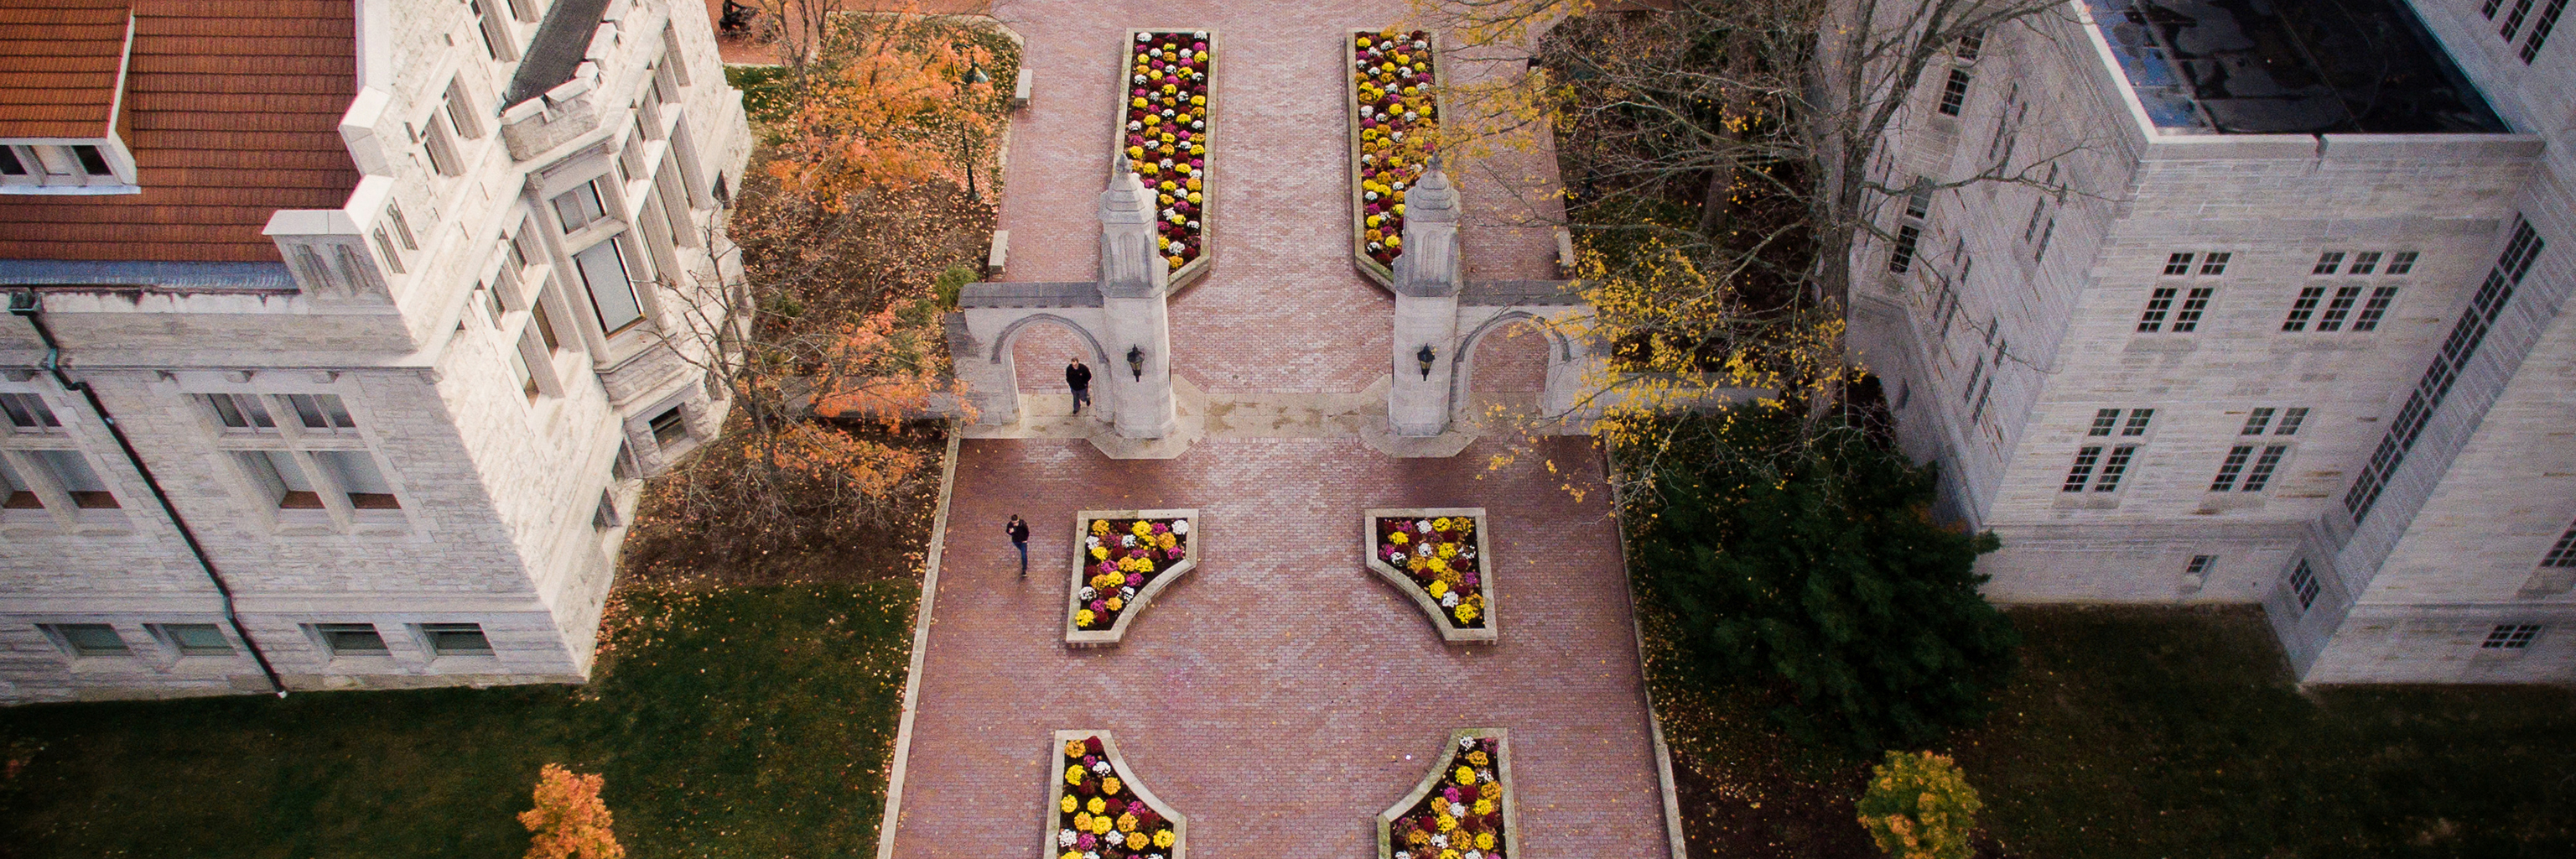 Aerial view of the Sample Gates on the Indiana University Bloomington campus in the fall season.